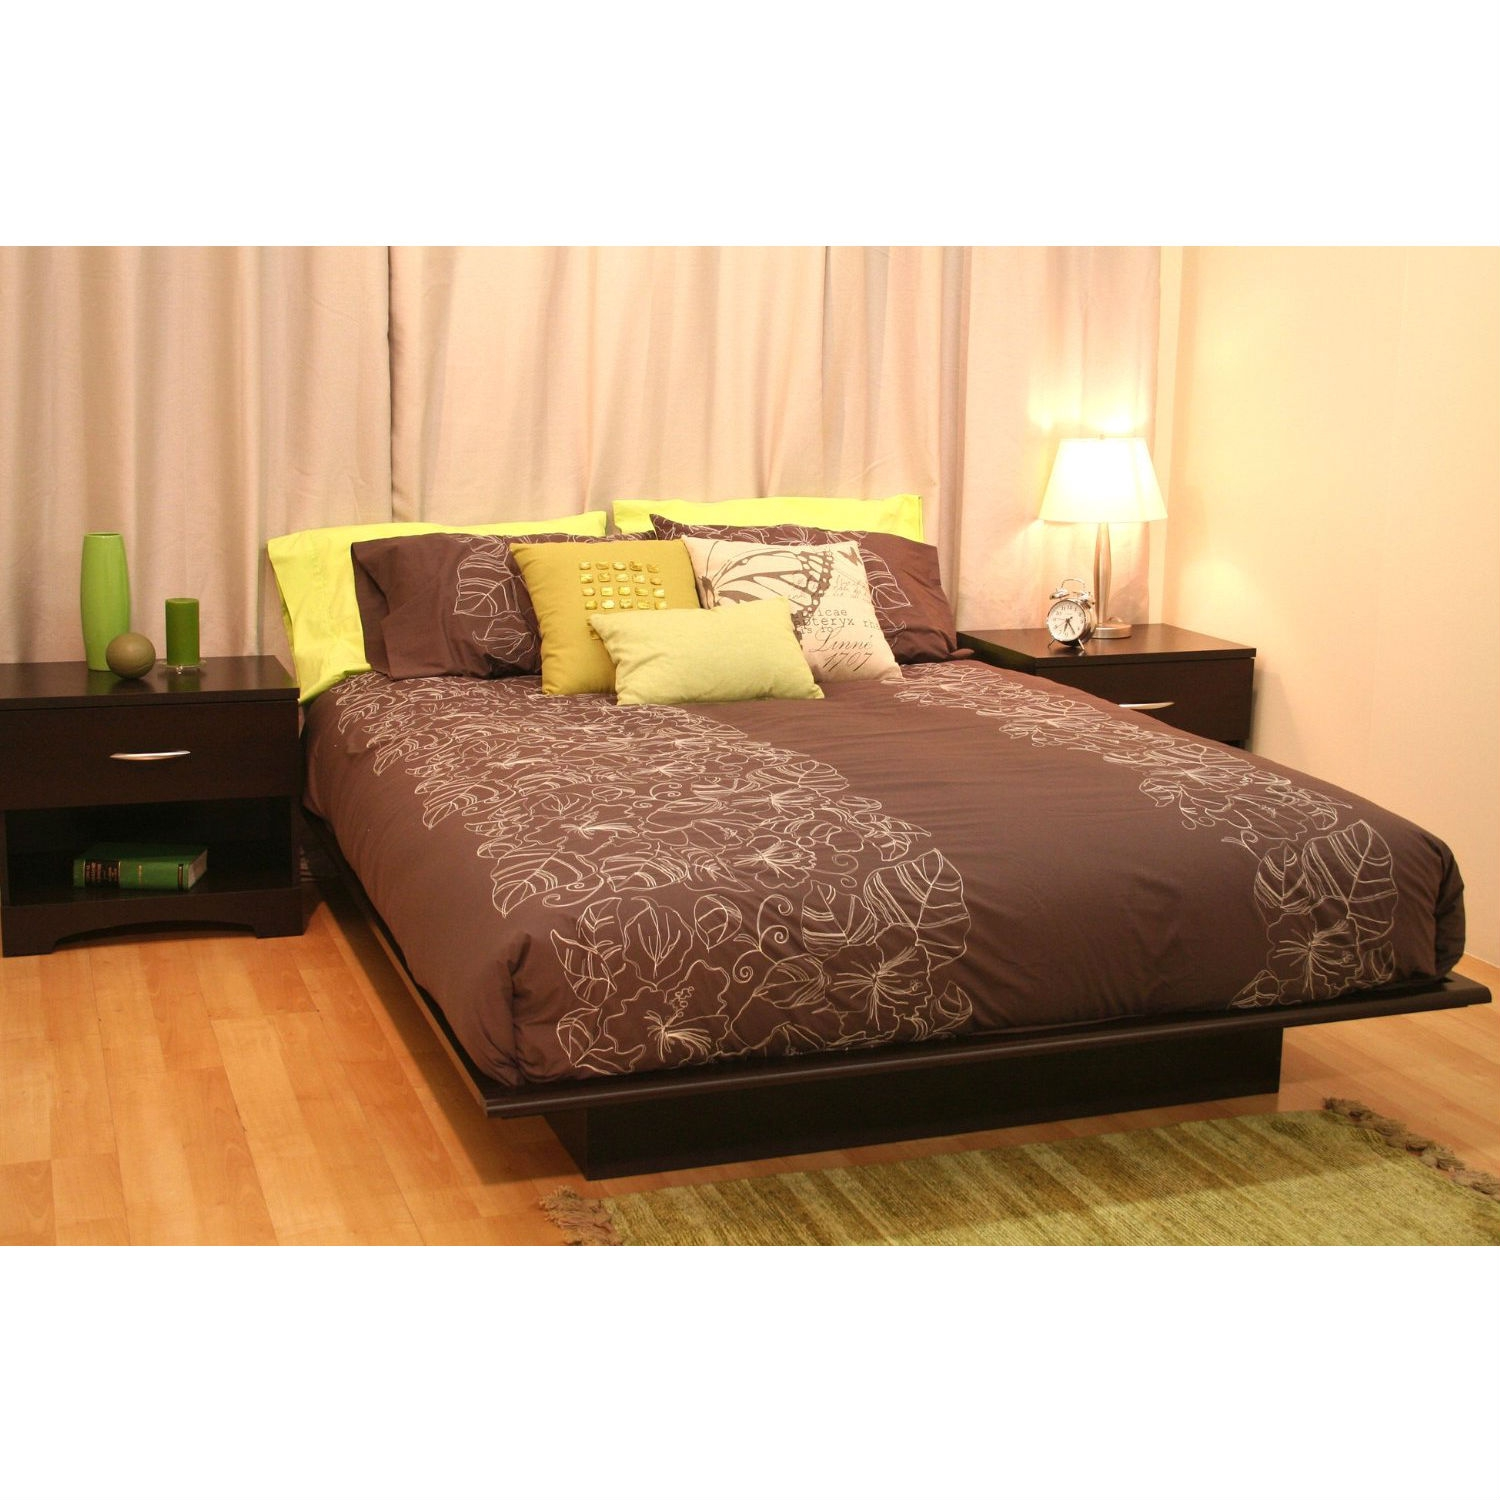 Queen size Platform Bed Frame in Dark Brown Chocolate Wood Finish,  BSPB1601Q :  This Queen size Platform Bed Frame in Dark Brown Chocolate Wood Finish would be a great addition to your home. It is made of non-toxic materials and there is no box spring required. Queen size Platform Bed Frame in Dark Brown Chocolate Wood Finish; Made of non-toxic materials and components; The moldings of the platform bed have profiled edges that help the mattress to stay in place. Manufactured from eco-friendly, EPP-compliant laminated particle board carrying the Forest Stewardship Council (FSC) certification; 5-year manufacturer's limited warranty; FSC Certified: Yes; Assembly Required: Yes; Product Warranty: 5 year limited warranty; CPSIA or CPSC Compliant: Yes; Frame Material: Particle board; ISTA 3A Certified: Yes; General Conformity Certificate: Yes; Country of Manufacture: Canada; Eco-Friendly: Yes; Product Care: Wipe clean with dry cloth.